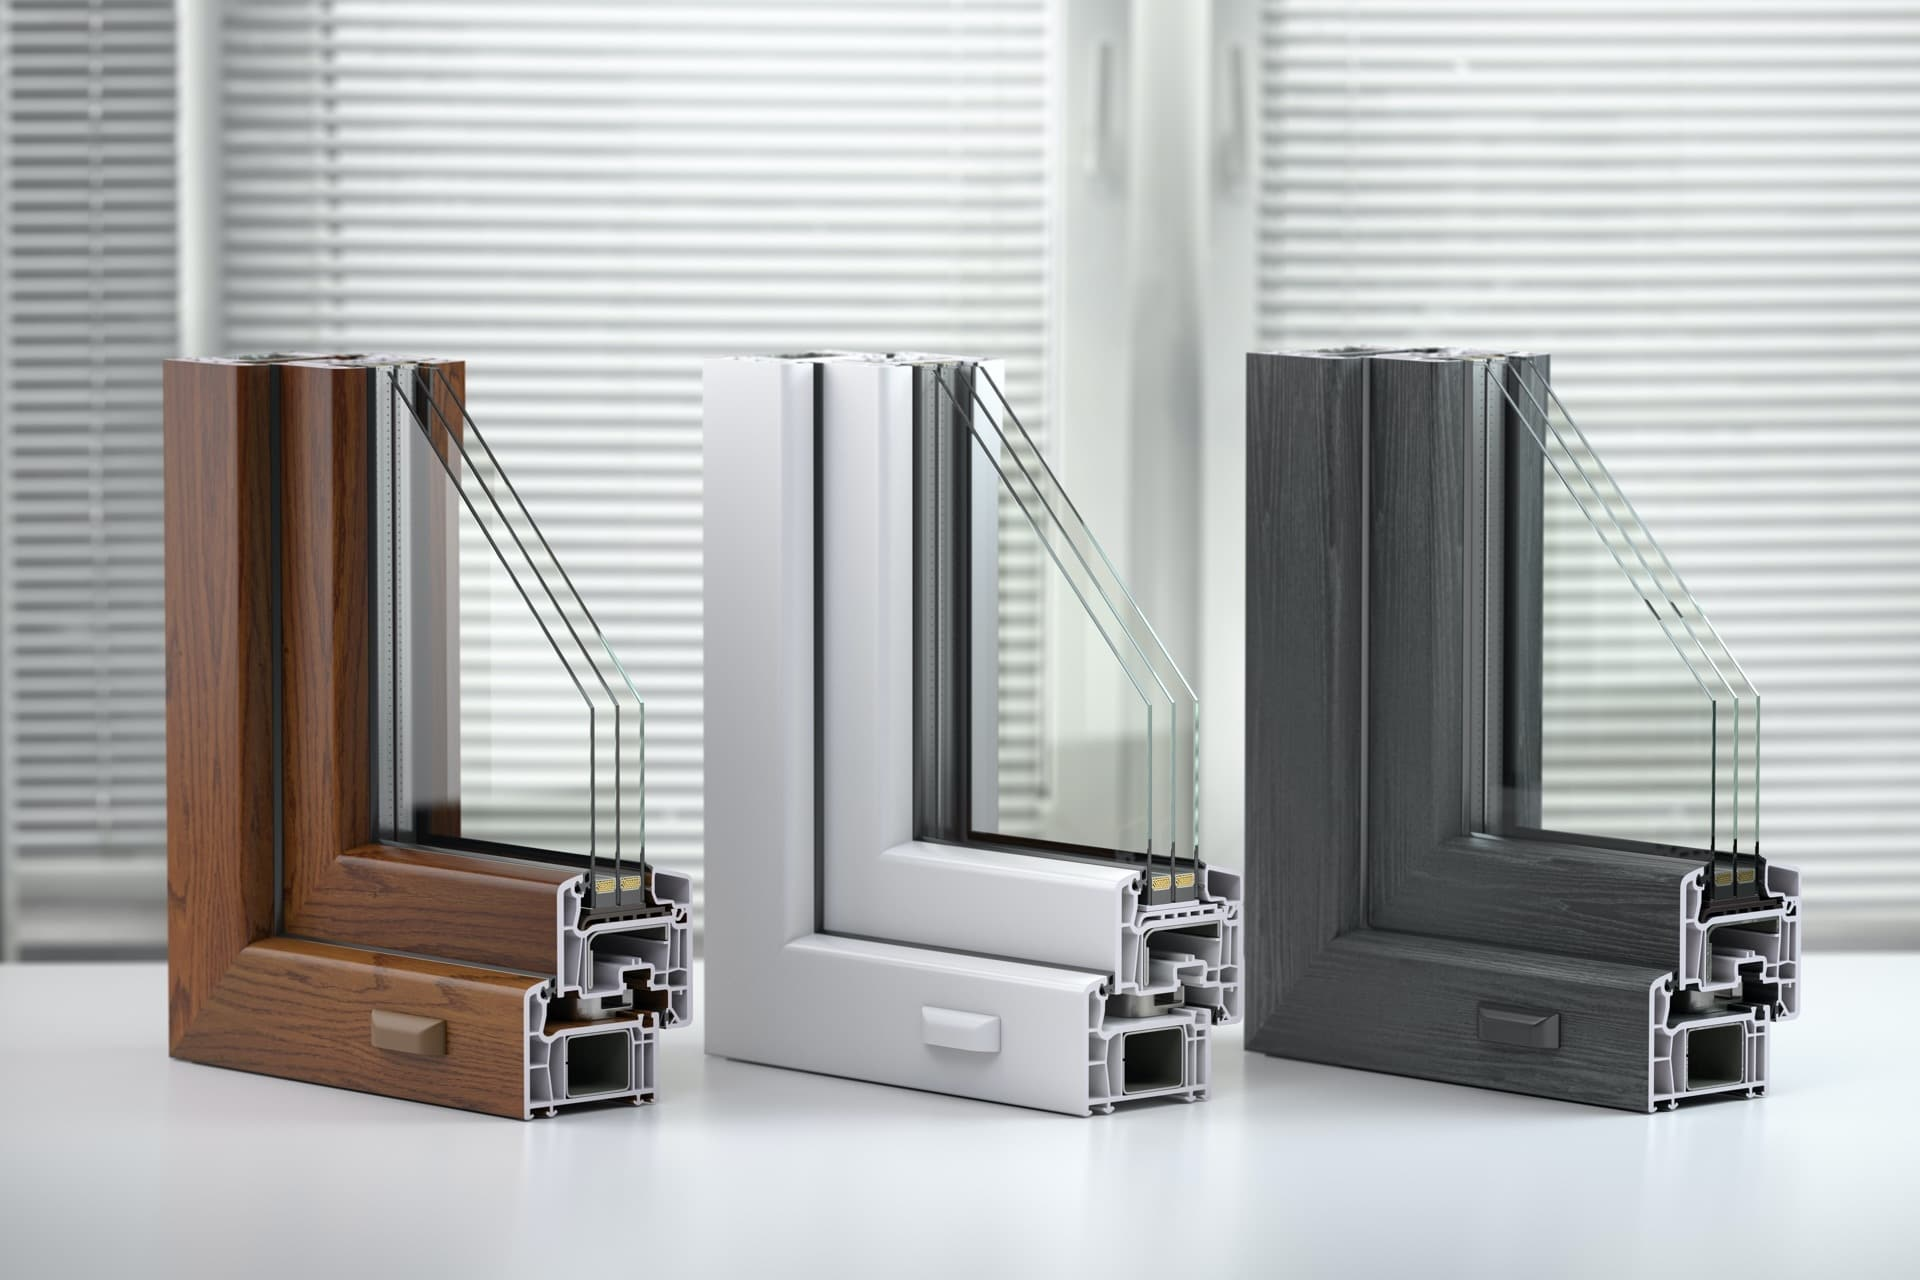 https://i-rebuild.com/wp-content/uploads/2020/11/PVC-profile-plastic-windows-of-different-colors-in-section-on-the-table-in-the-office-1.jpg